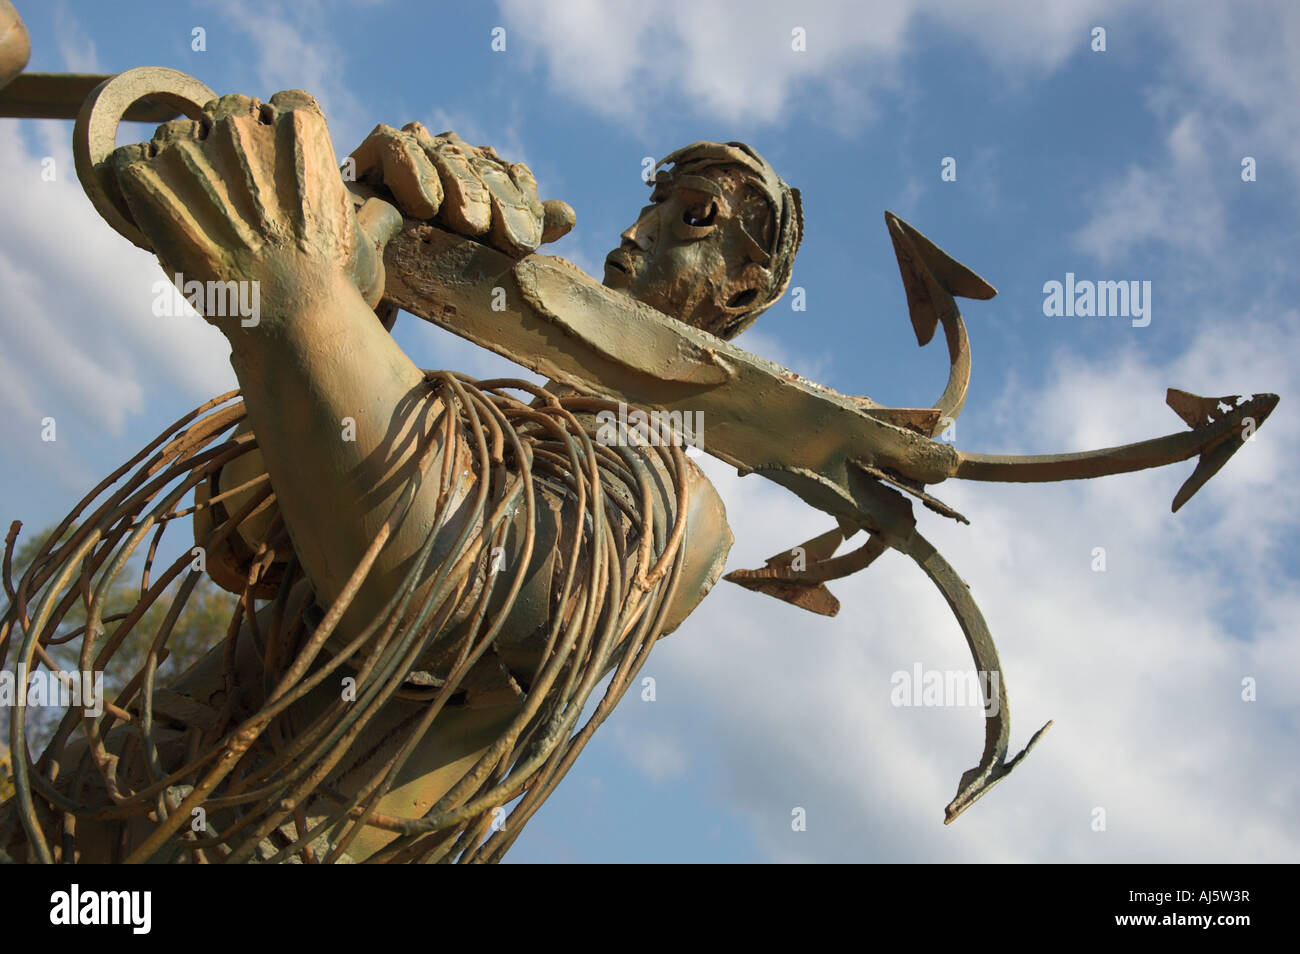 Abstract steel sculpture Hombres de Mar of fisherman with anchor in memory of those lost at sea Laredo Spain - Stock Image